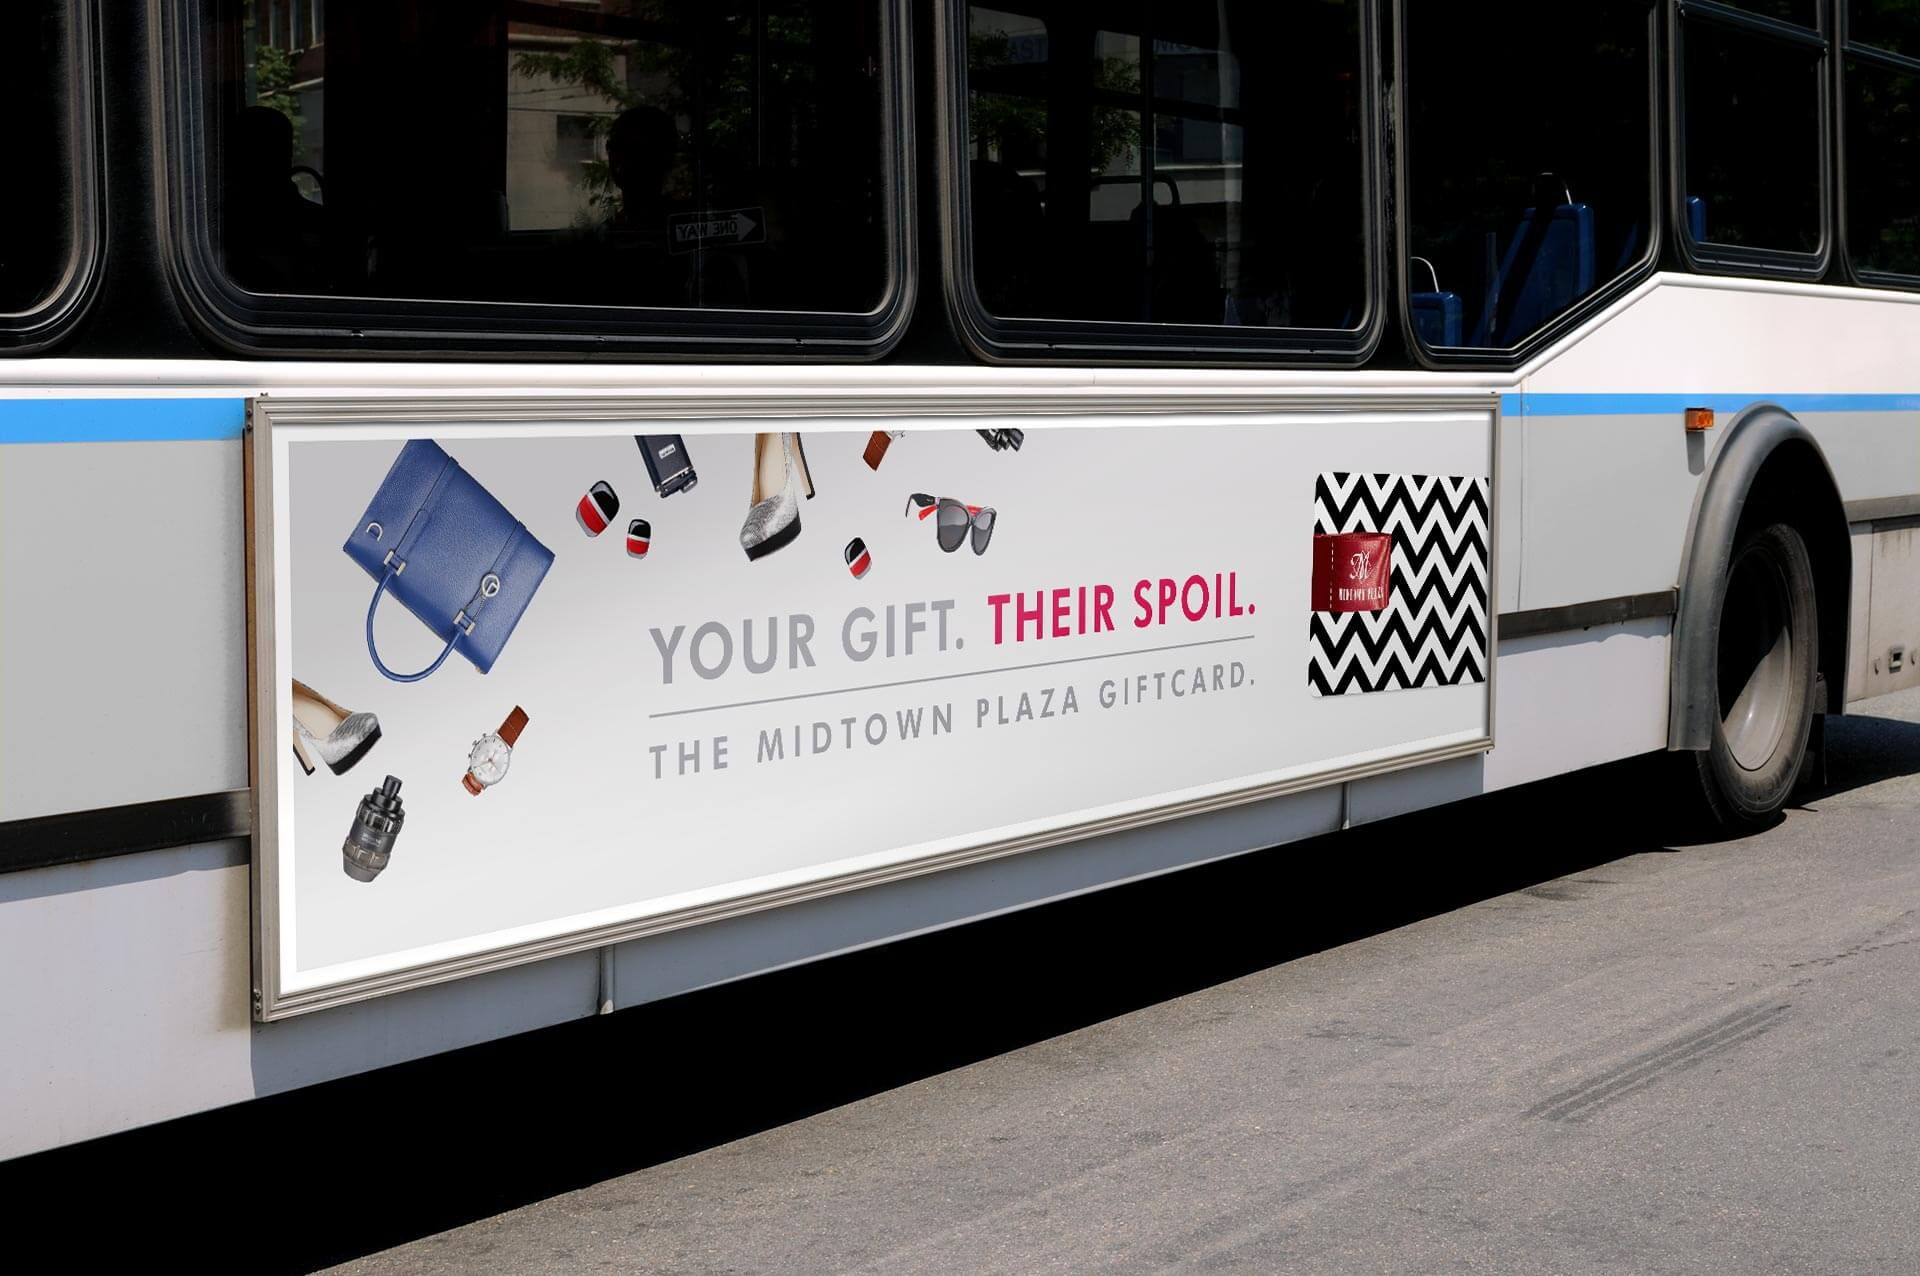 Giftcard Campaign Bus Ad